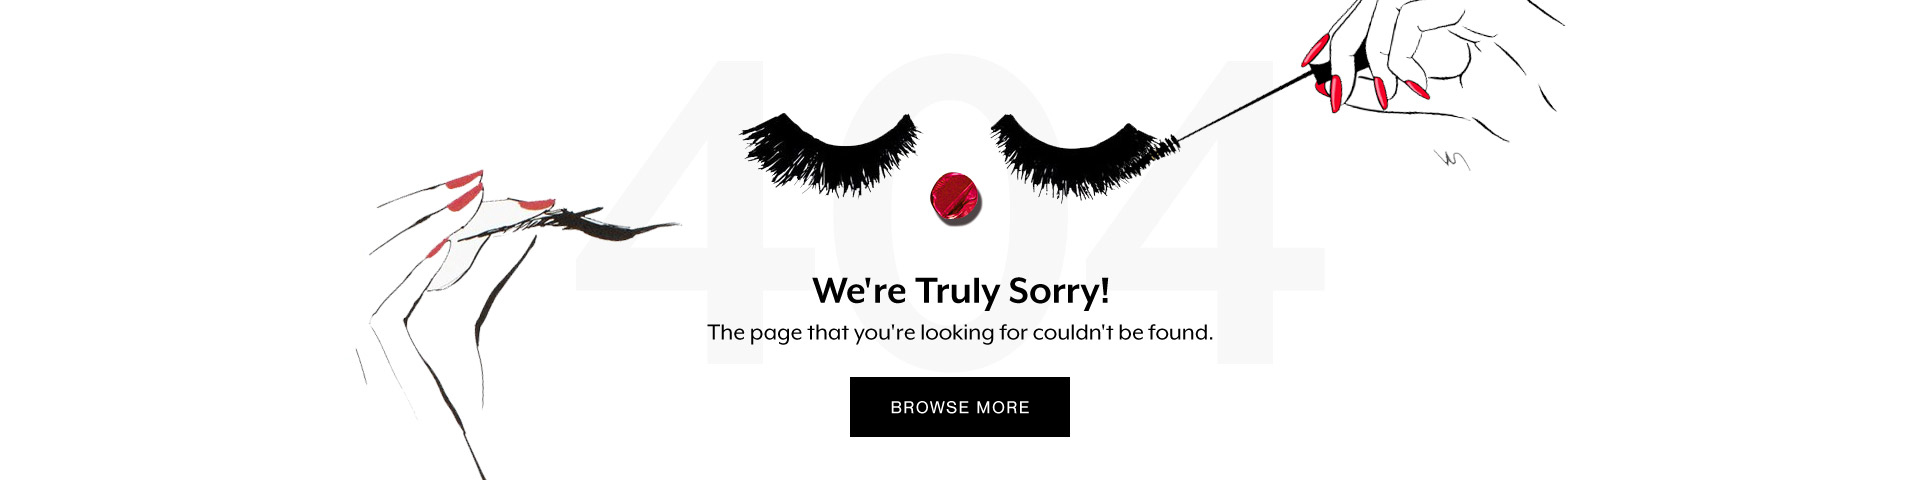 Error Page - Page Not Found